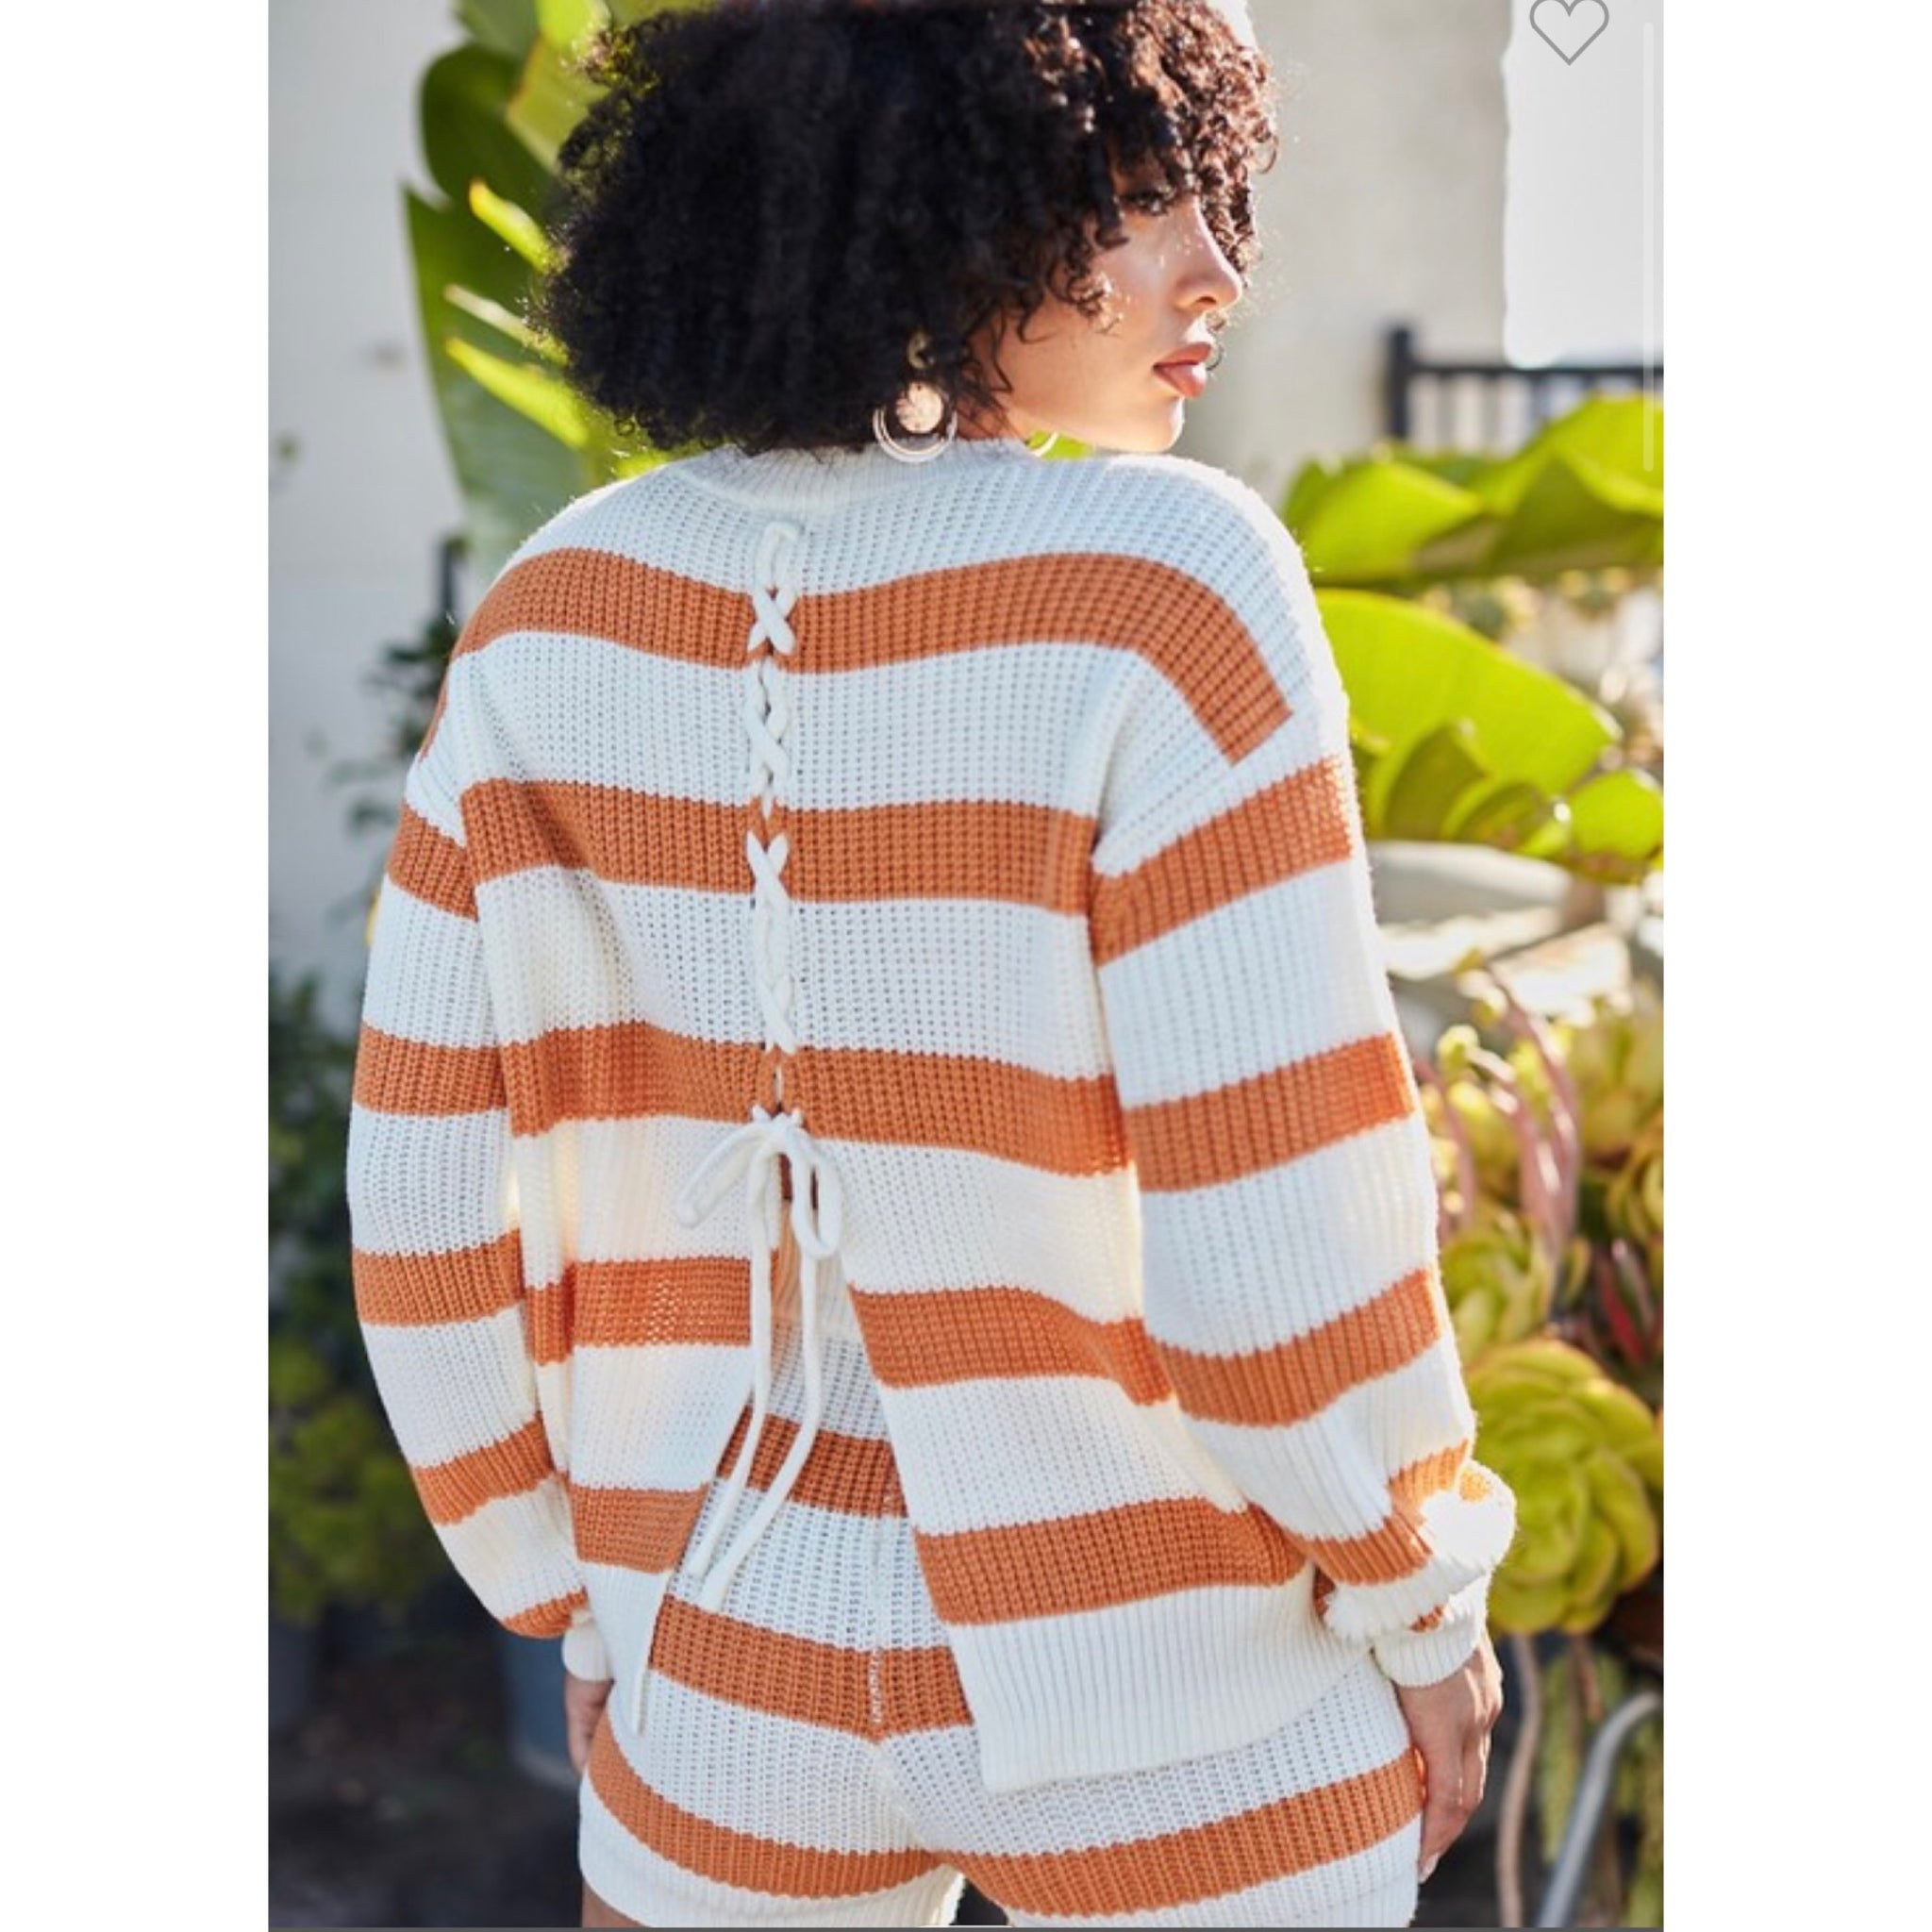 Essential Fall Knit 🧶 Short Set - Orange